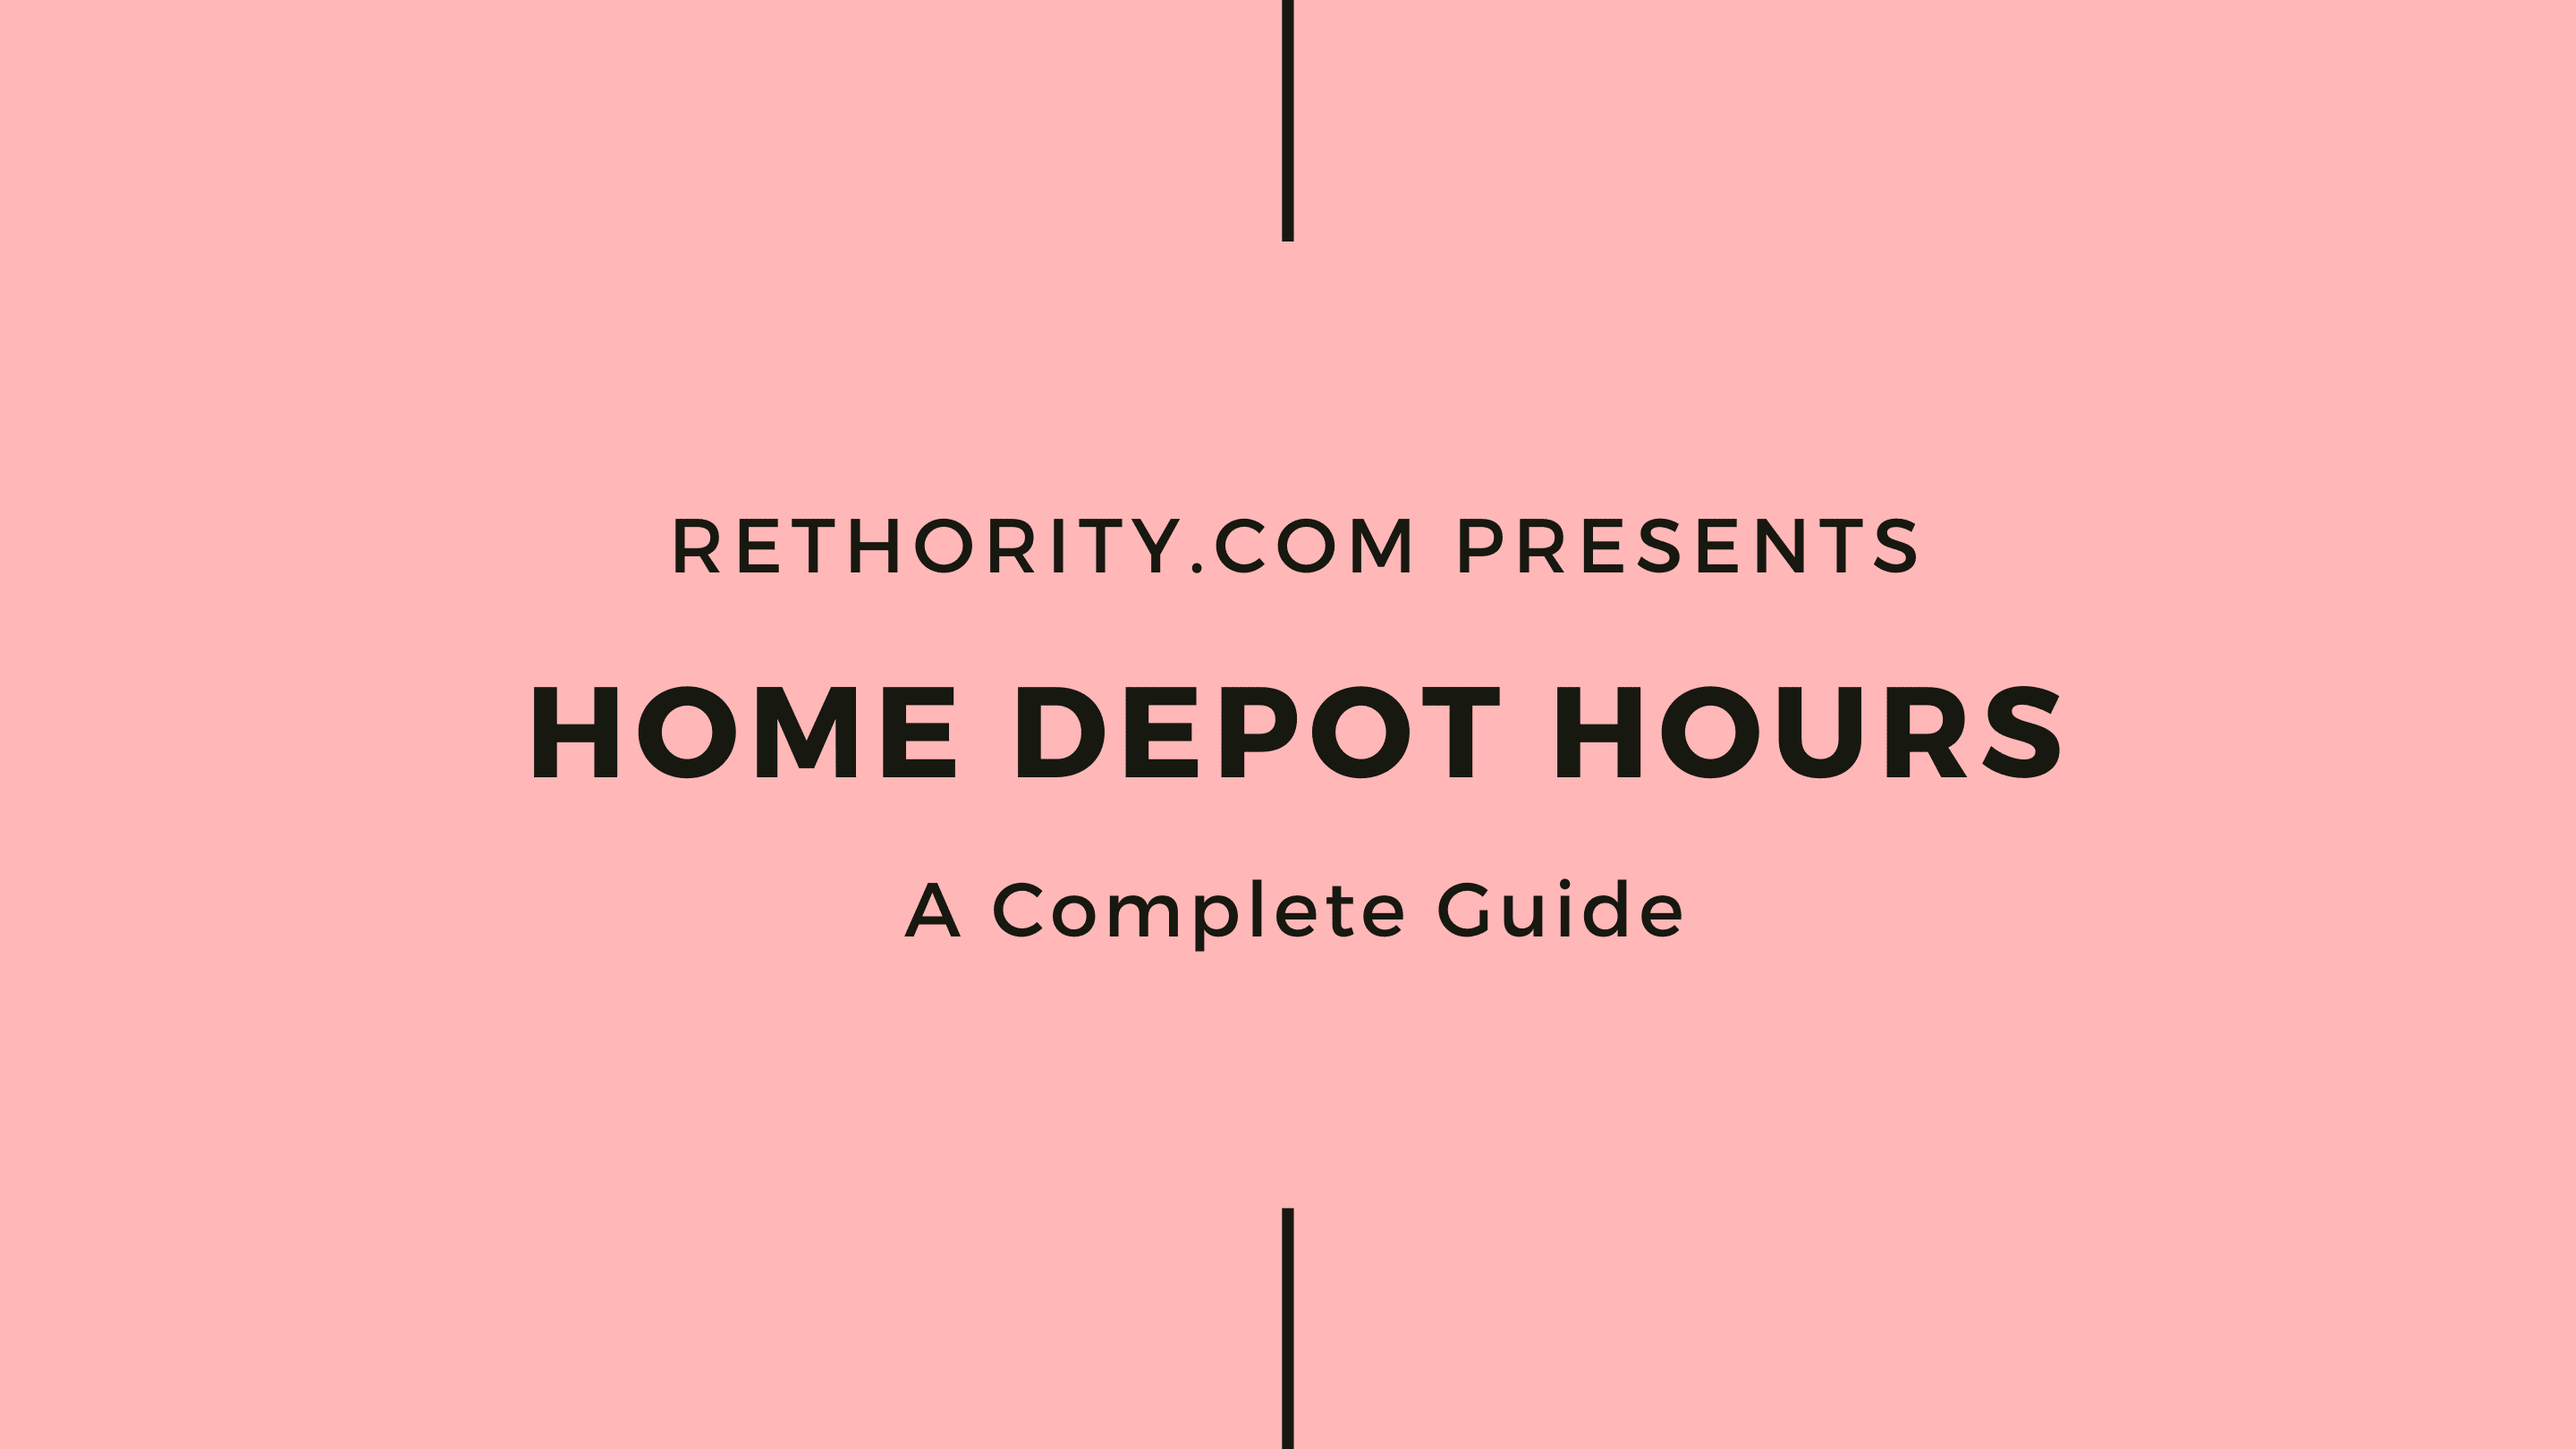 Home Depot Hours graphic against salmon background as the featured image for a piece on the topic